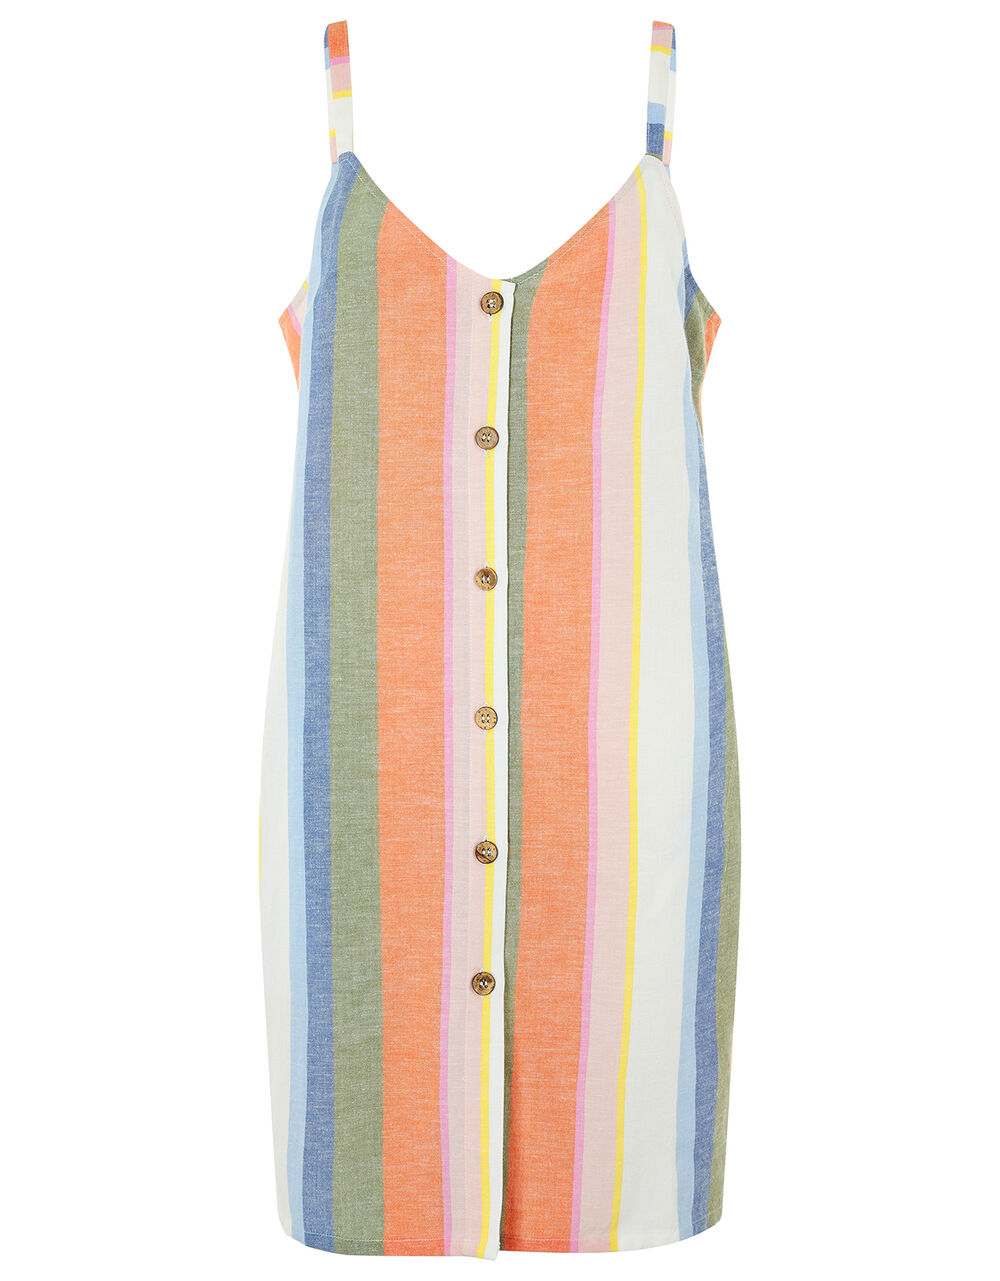 Stripe Print Mini Dress in Pure Cotton, Multi (PASTEL-MULTI), large